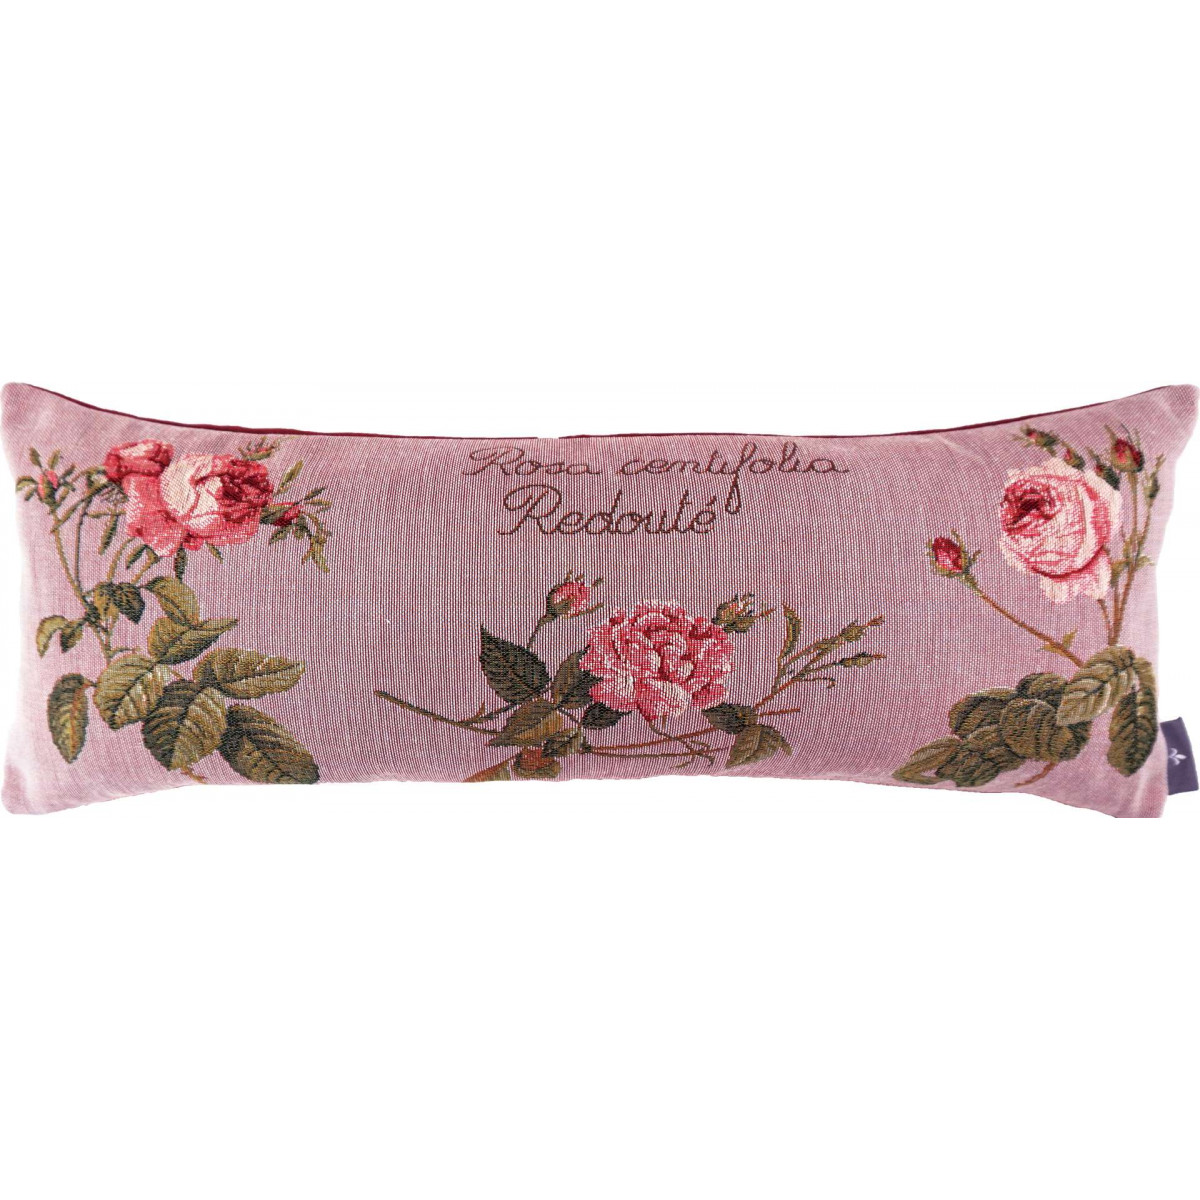 Coussin roses de redouté made in france rose 25x60